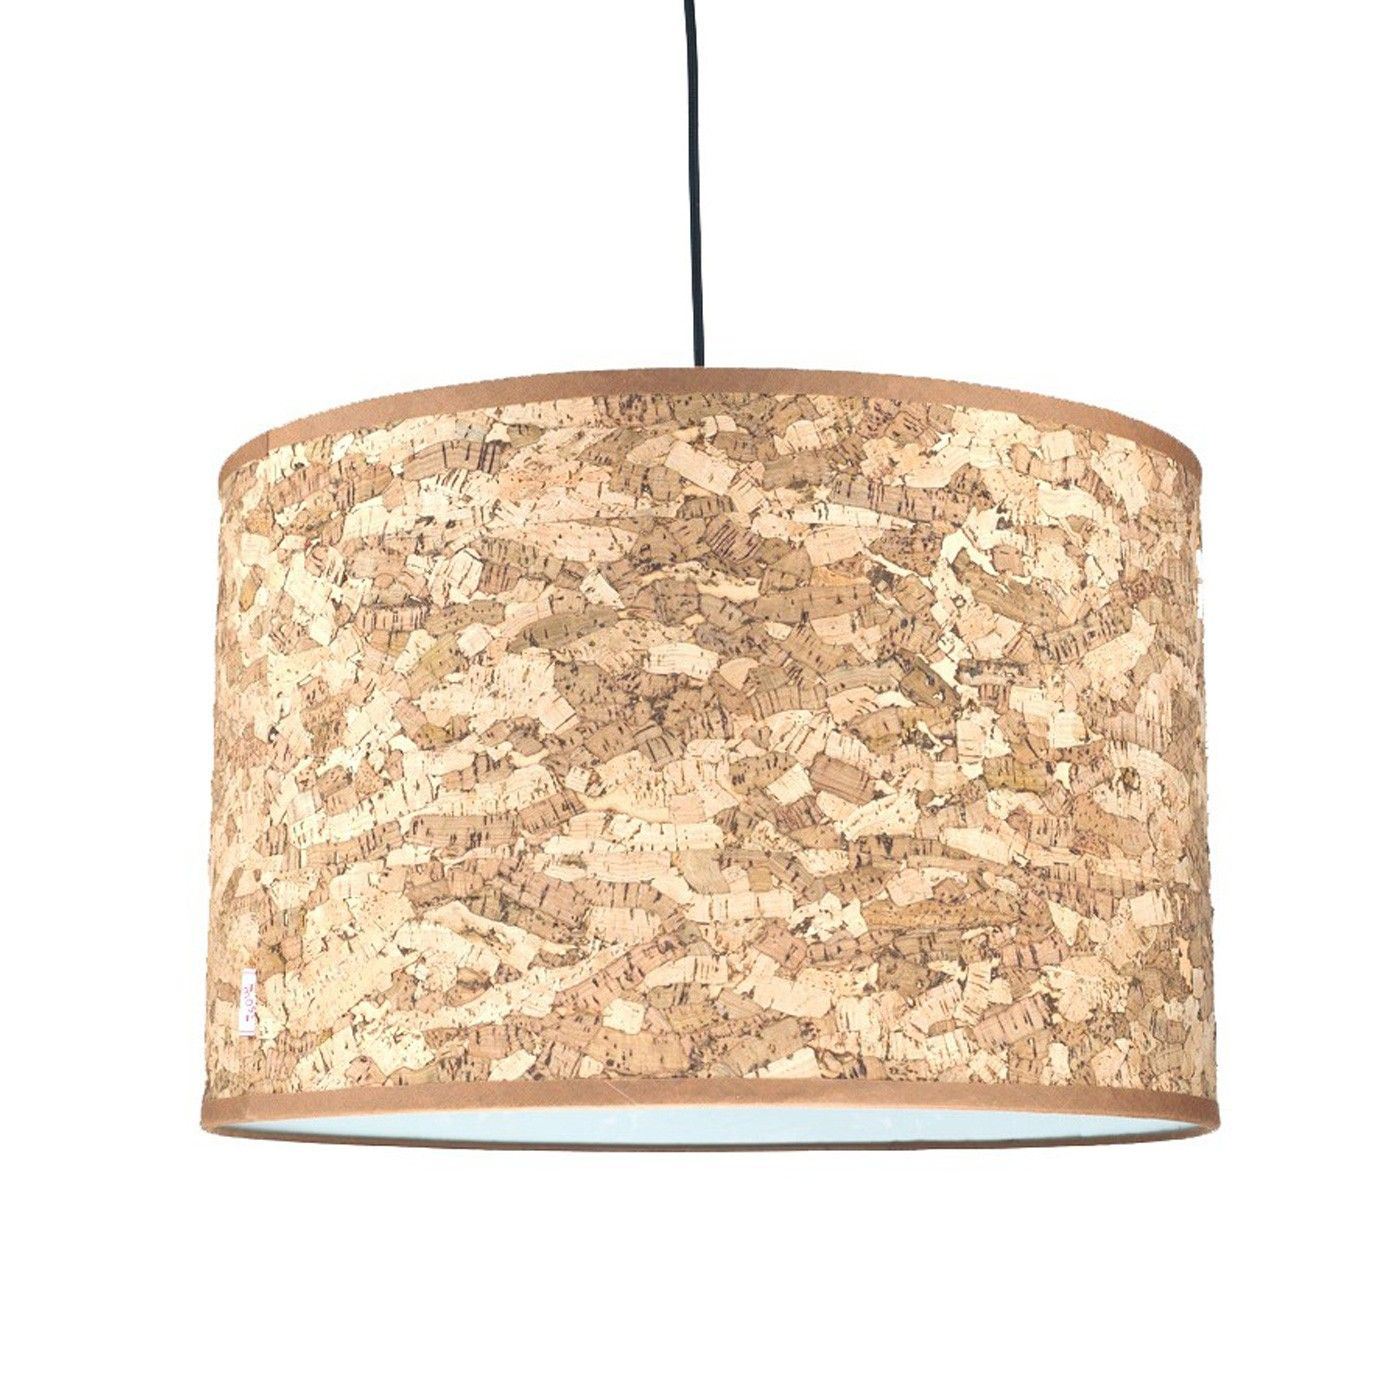 Crafted From Cork This Simply Styled Hanging Shade Is Available In A Natural Or Smoked Effect Ideal For Creating A Relaxing Ambience T Natural Lamps Funky Lamp Shades Ceiling Lights